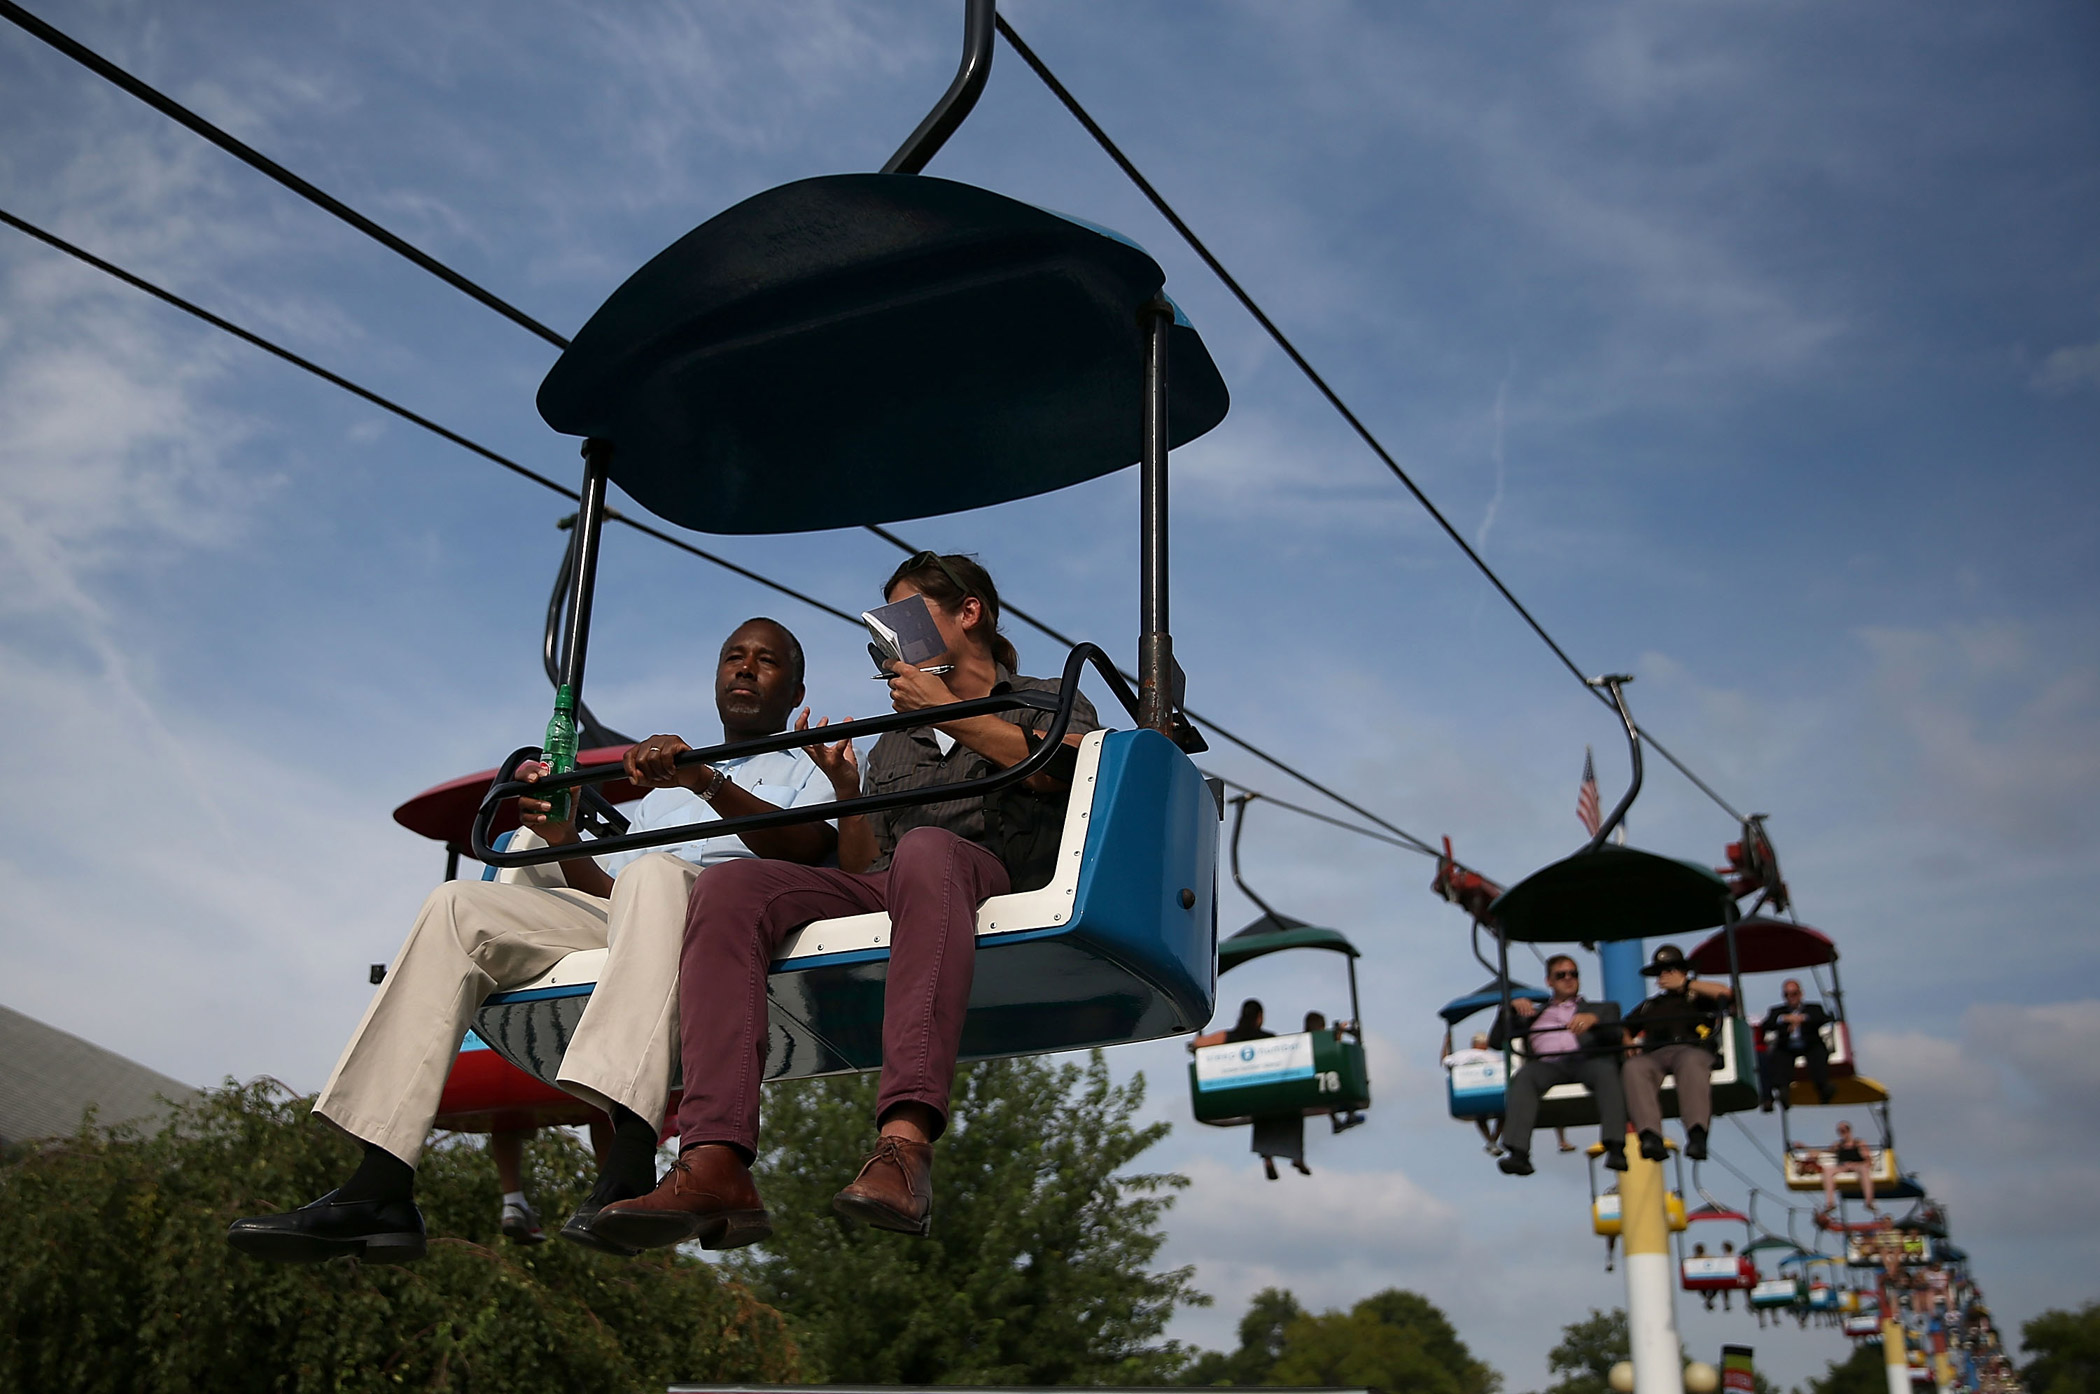 Ben Carson rides the Sky Glider with a reporter while touring the Iowa State Fair on Aug. 16, 2015 in Des Moines, Iowa.